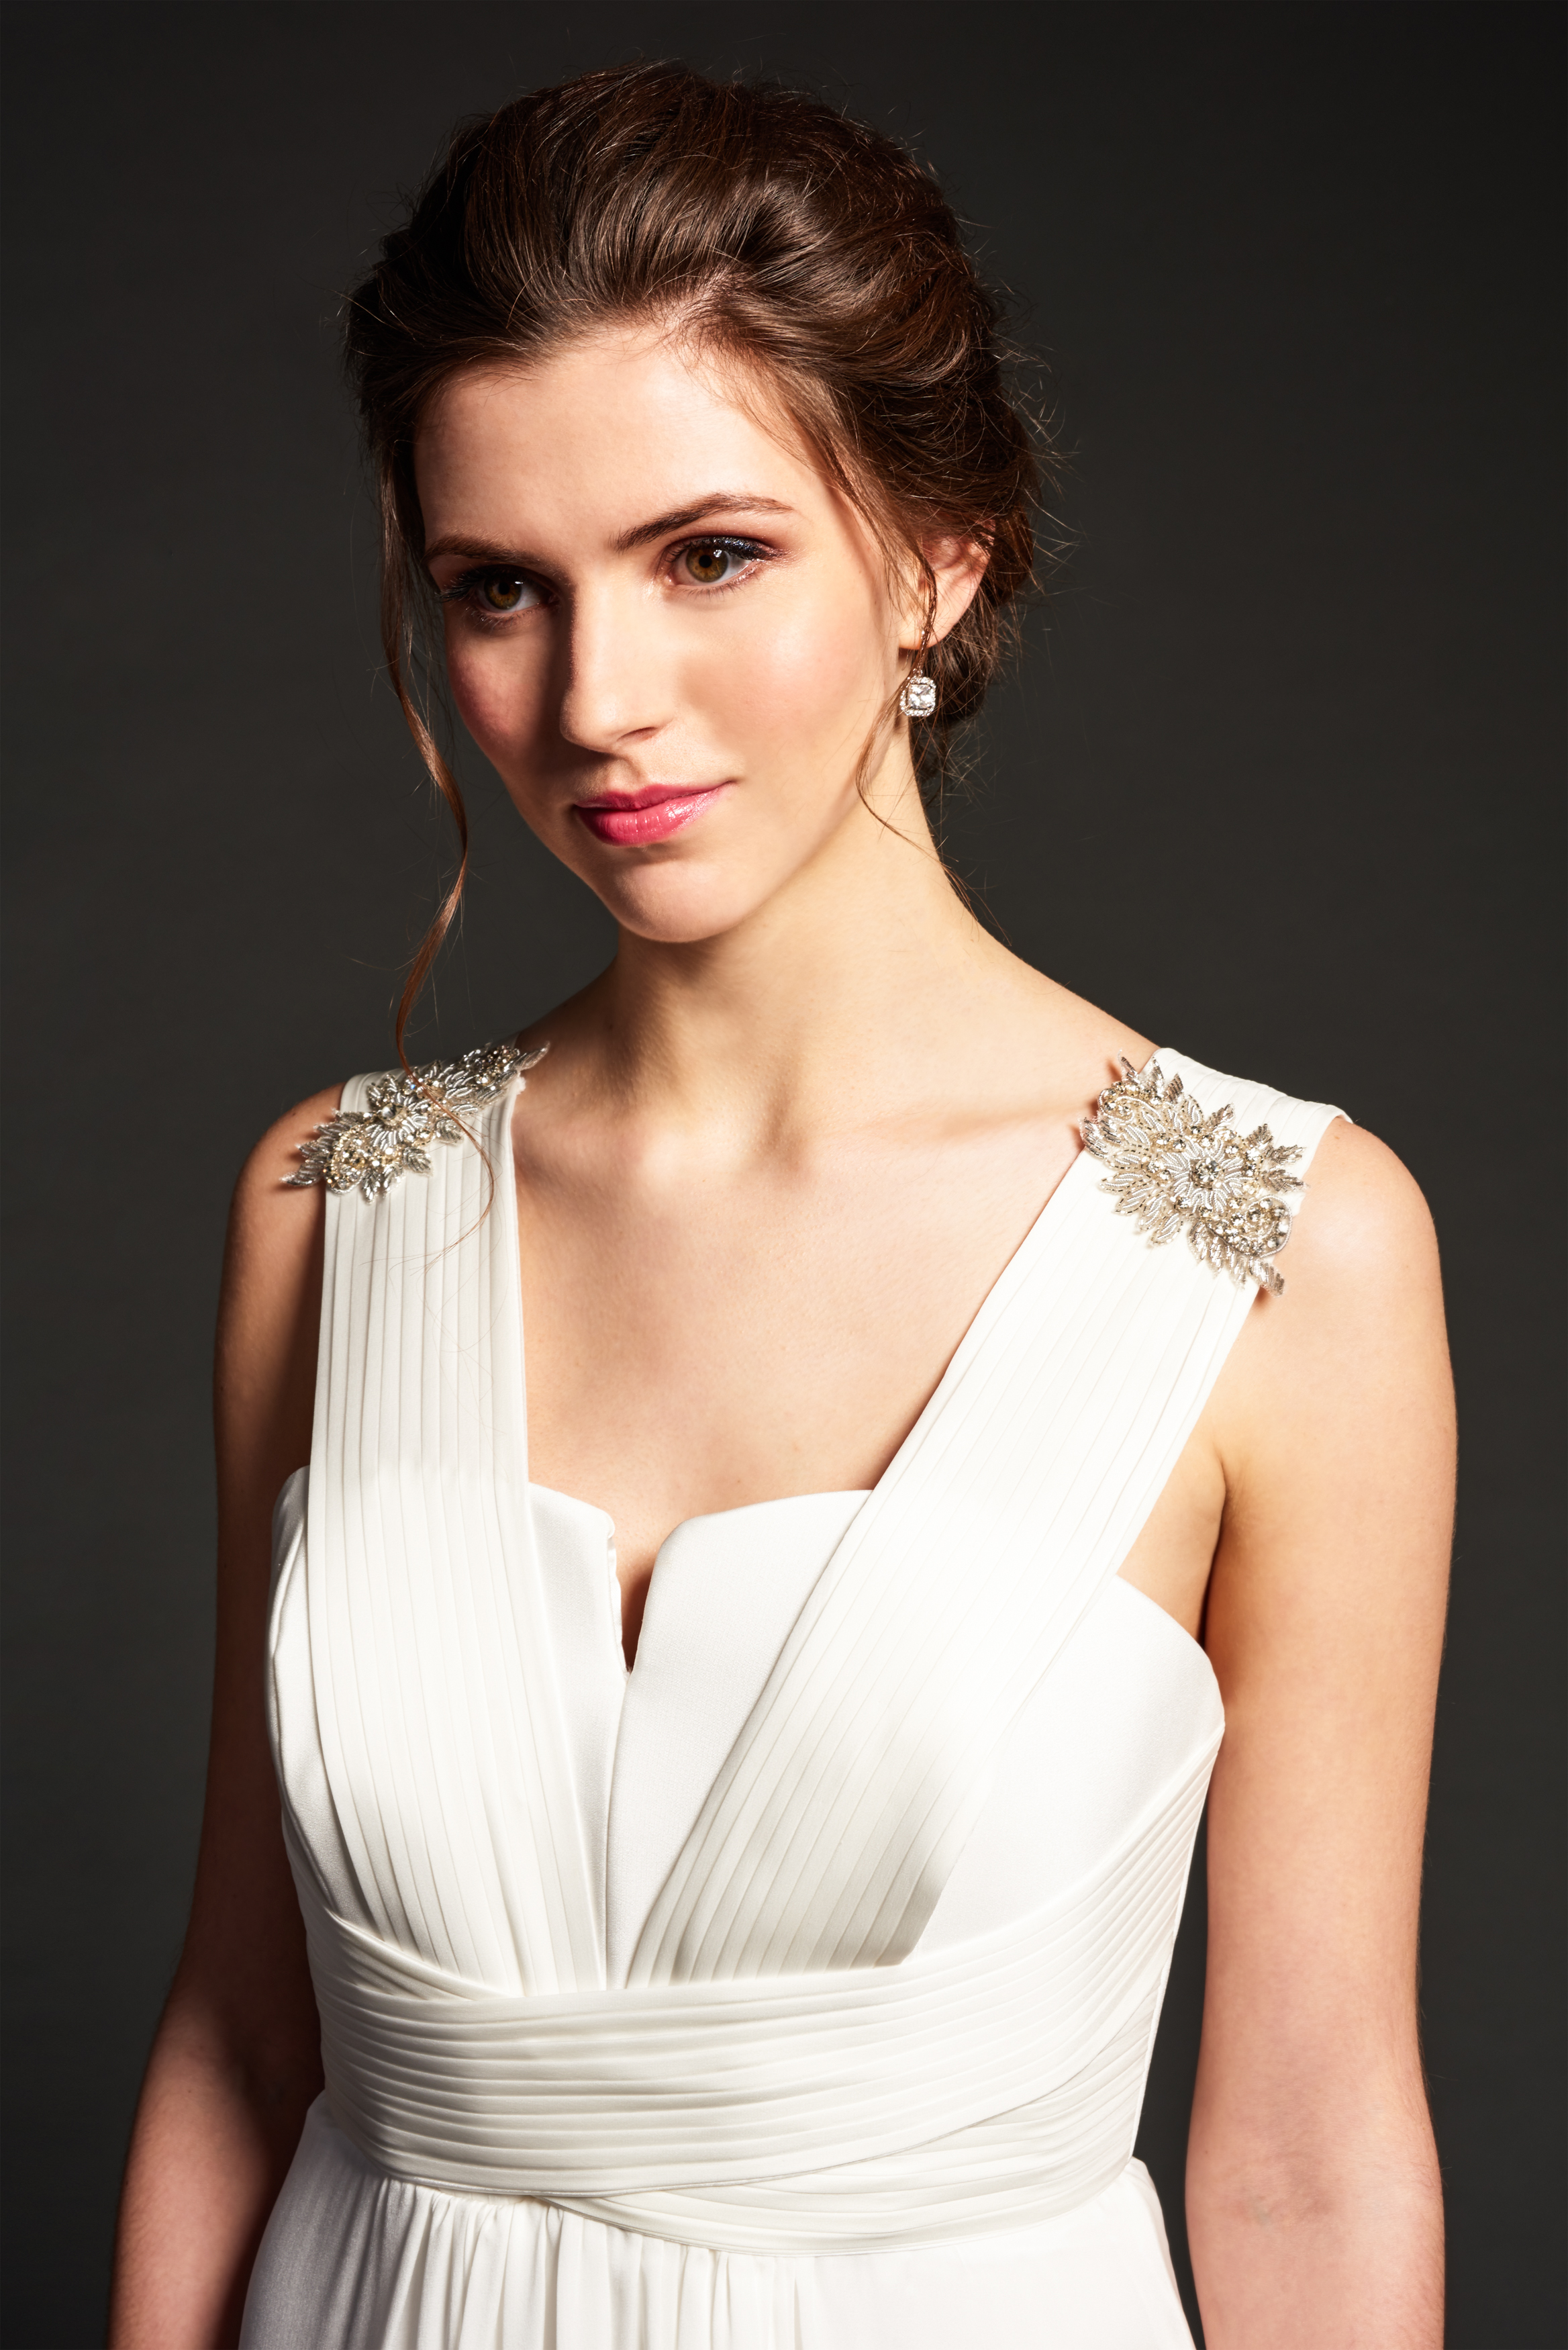 160213_GEMMA LEAKEY BRIDAL - DRESS 04-03.jpg